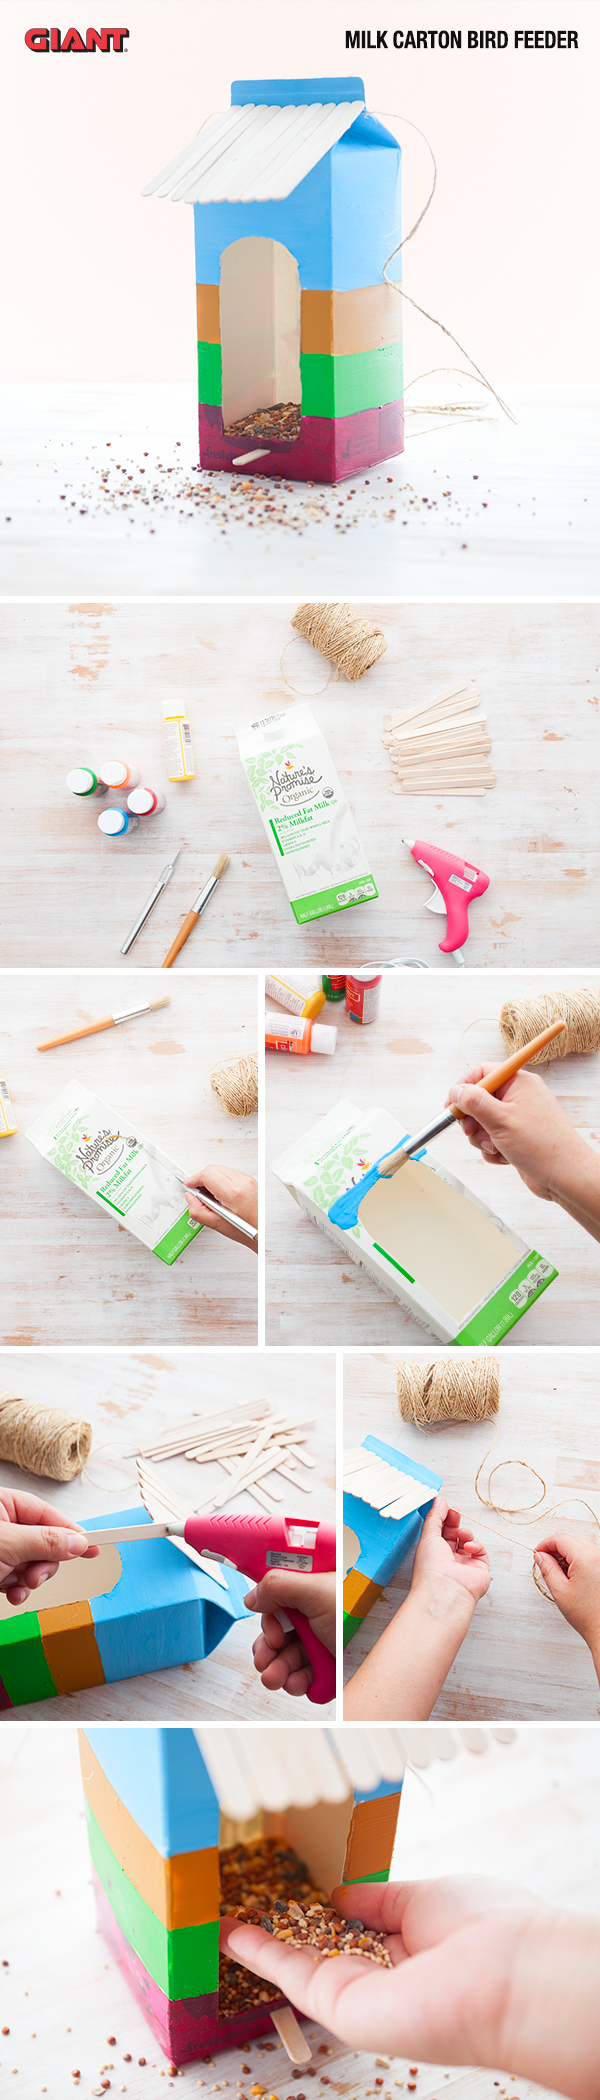 Turn your empty milk carton into a birdhouse in a few easy steps. Let the kids decorate it for some added fun.